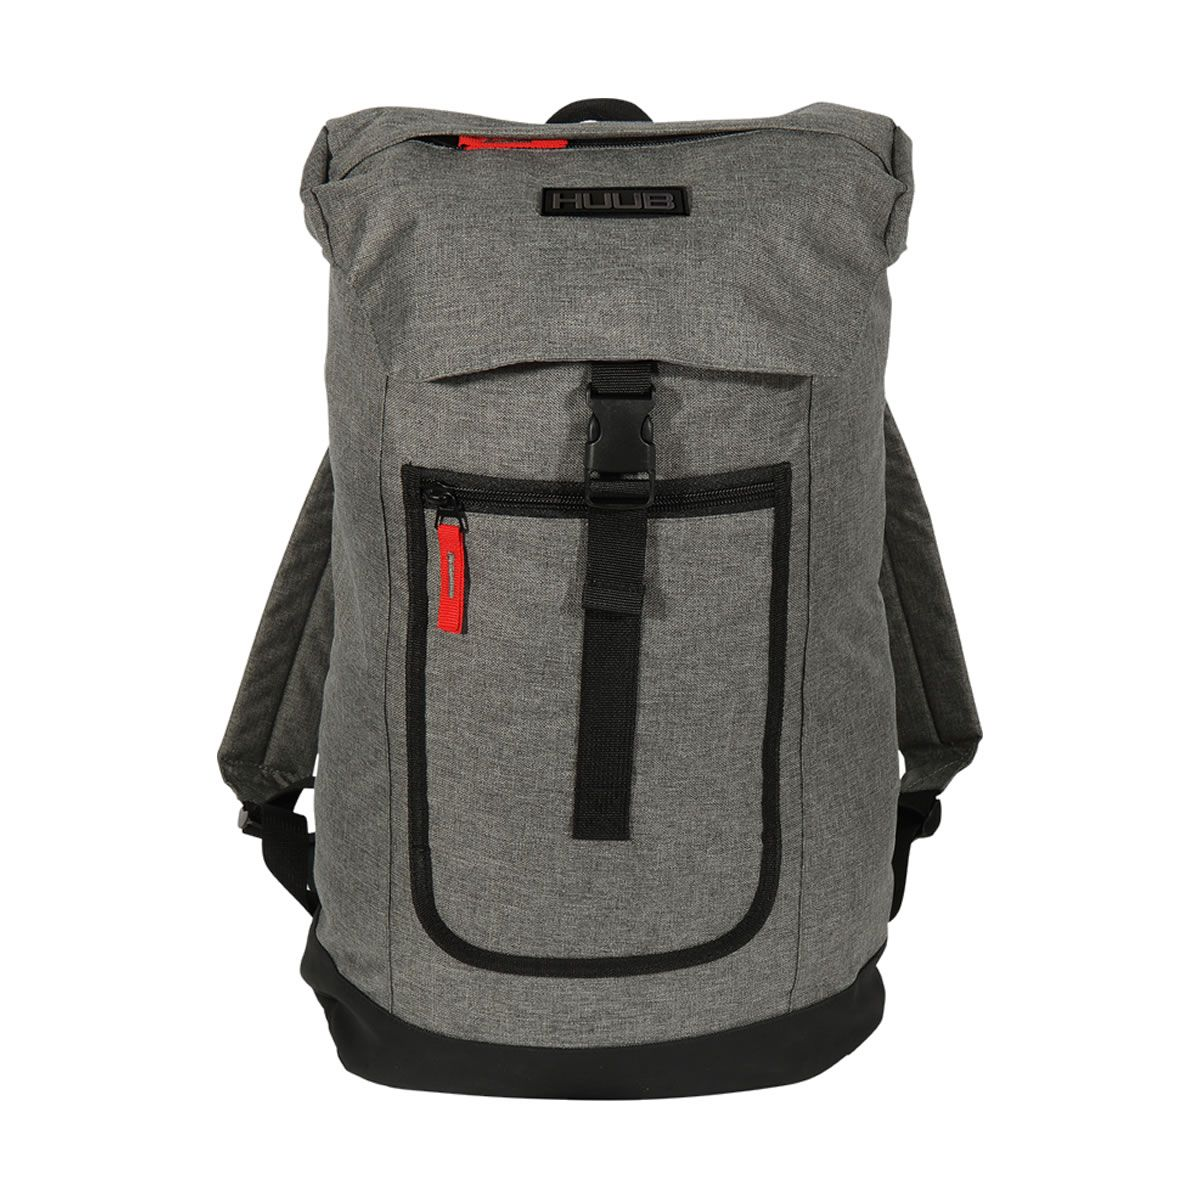 Weekend Back Pack - HUUB